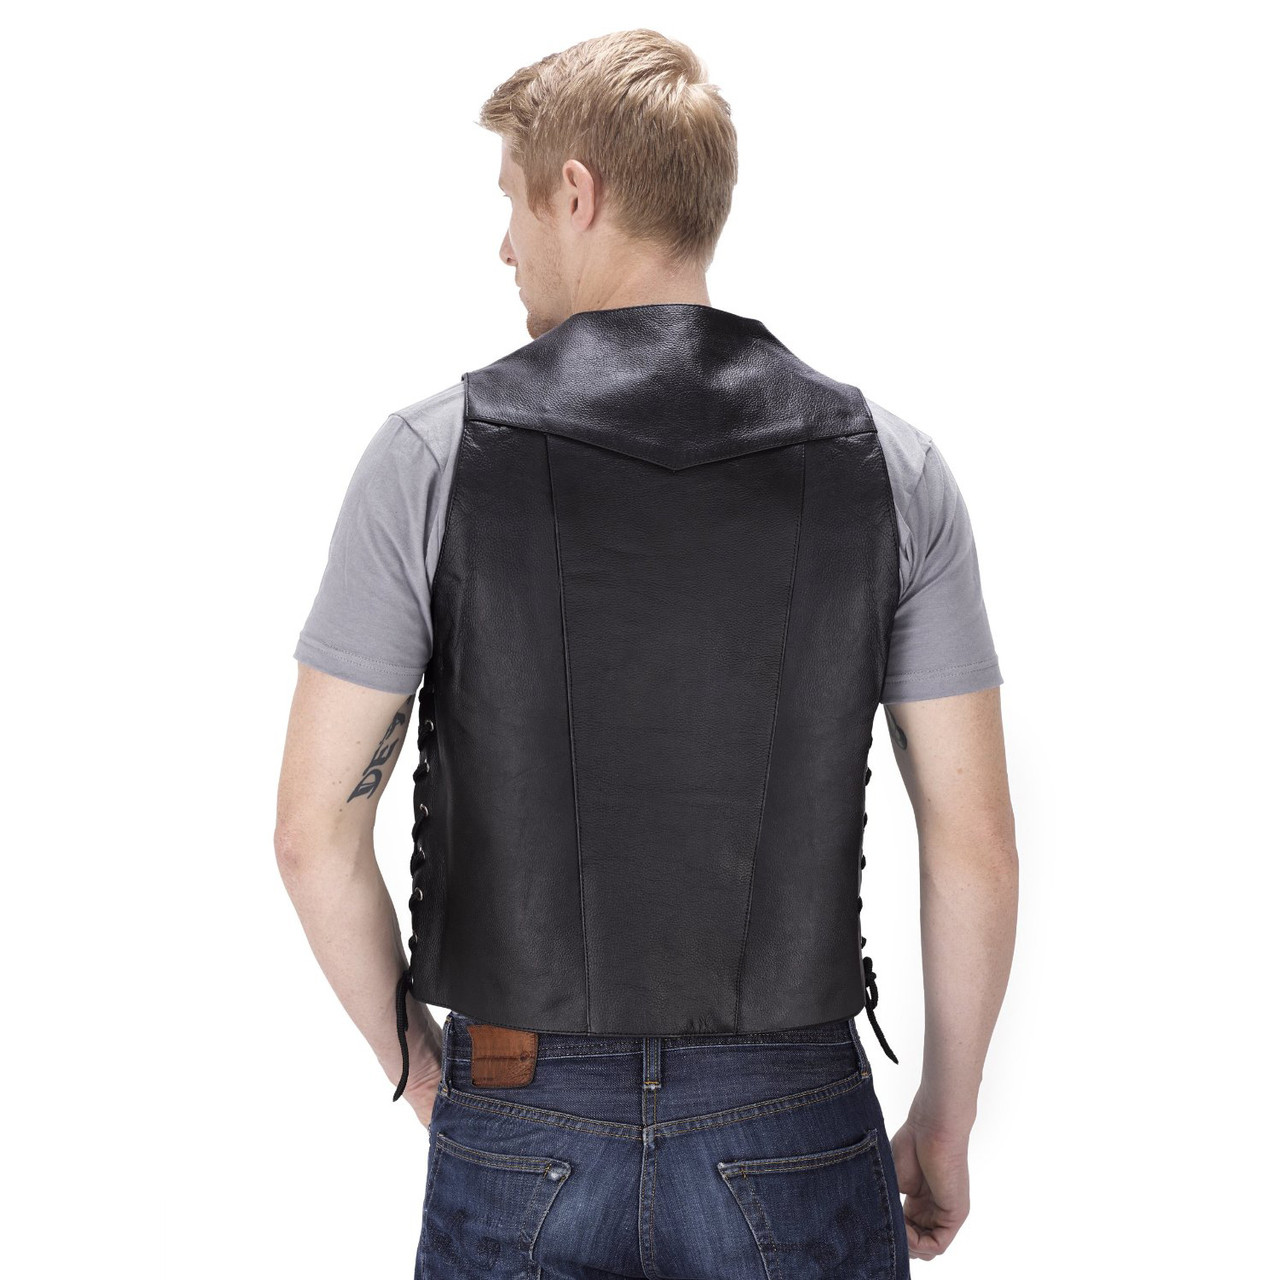 VikingCycle Thorfinn 10 pocket Motorcycle Vest for Men Back View